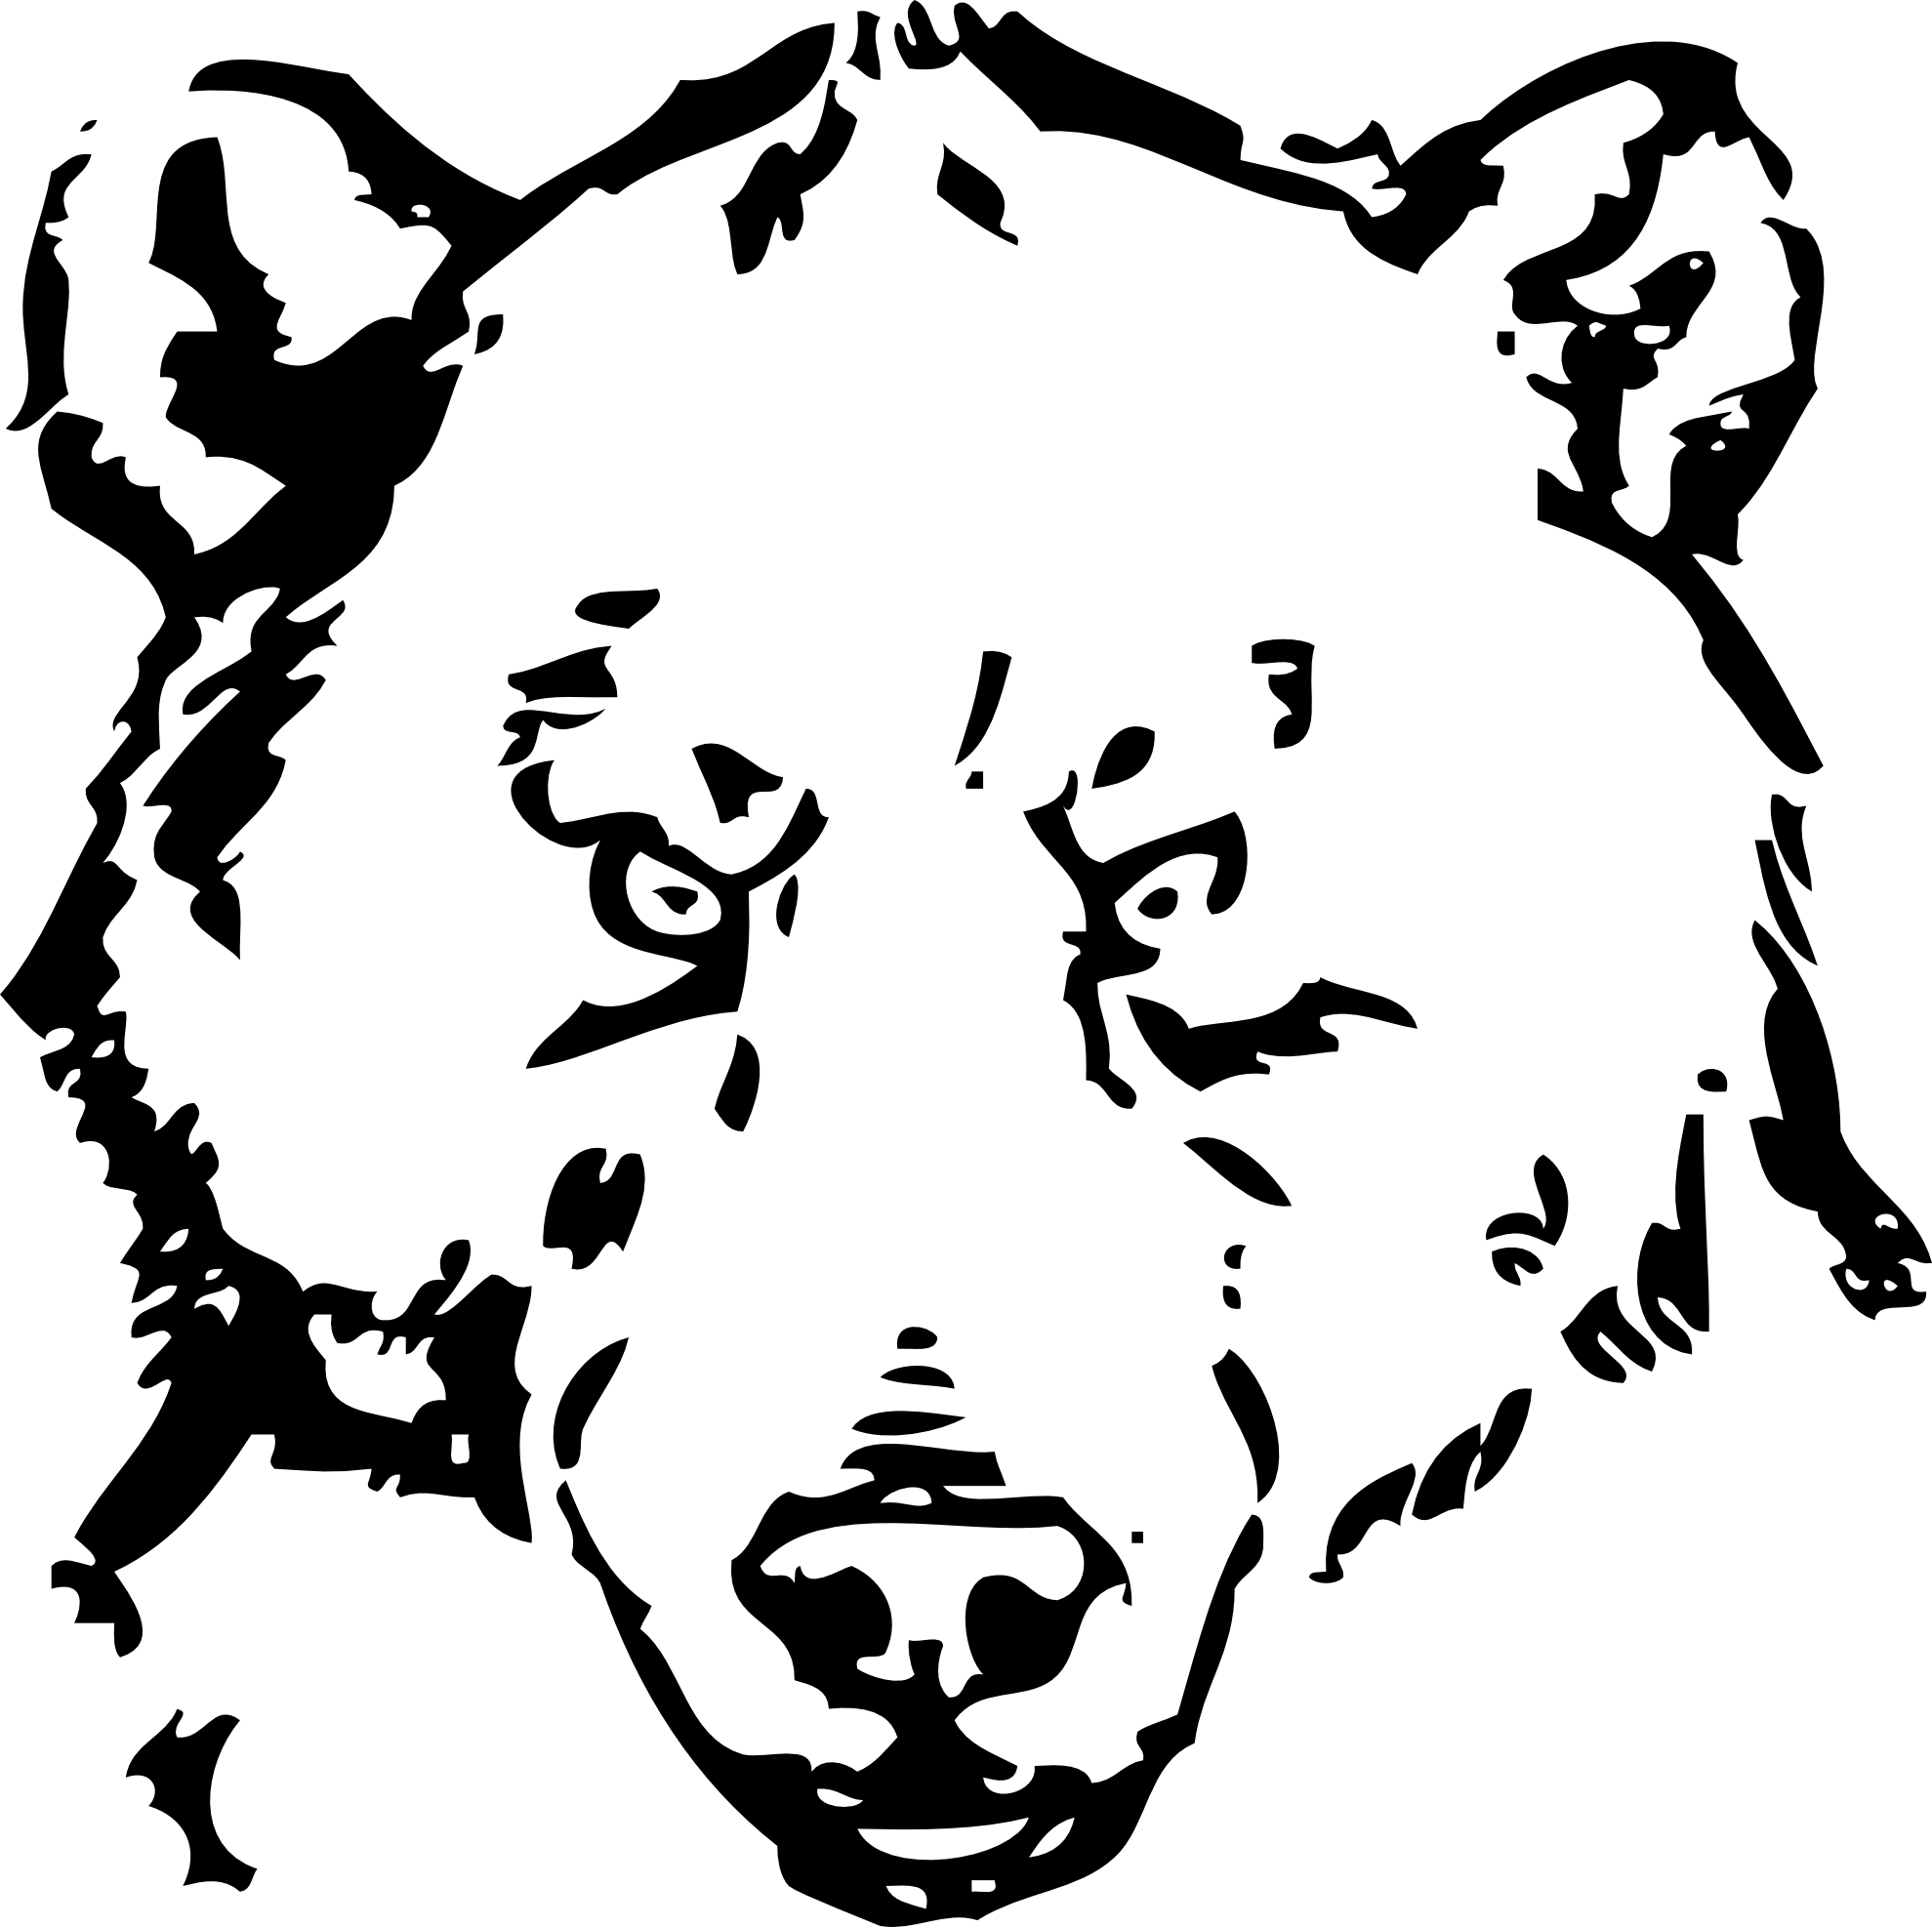 Bear Clipart Black And White - ClipArt Best